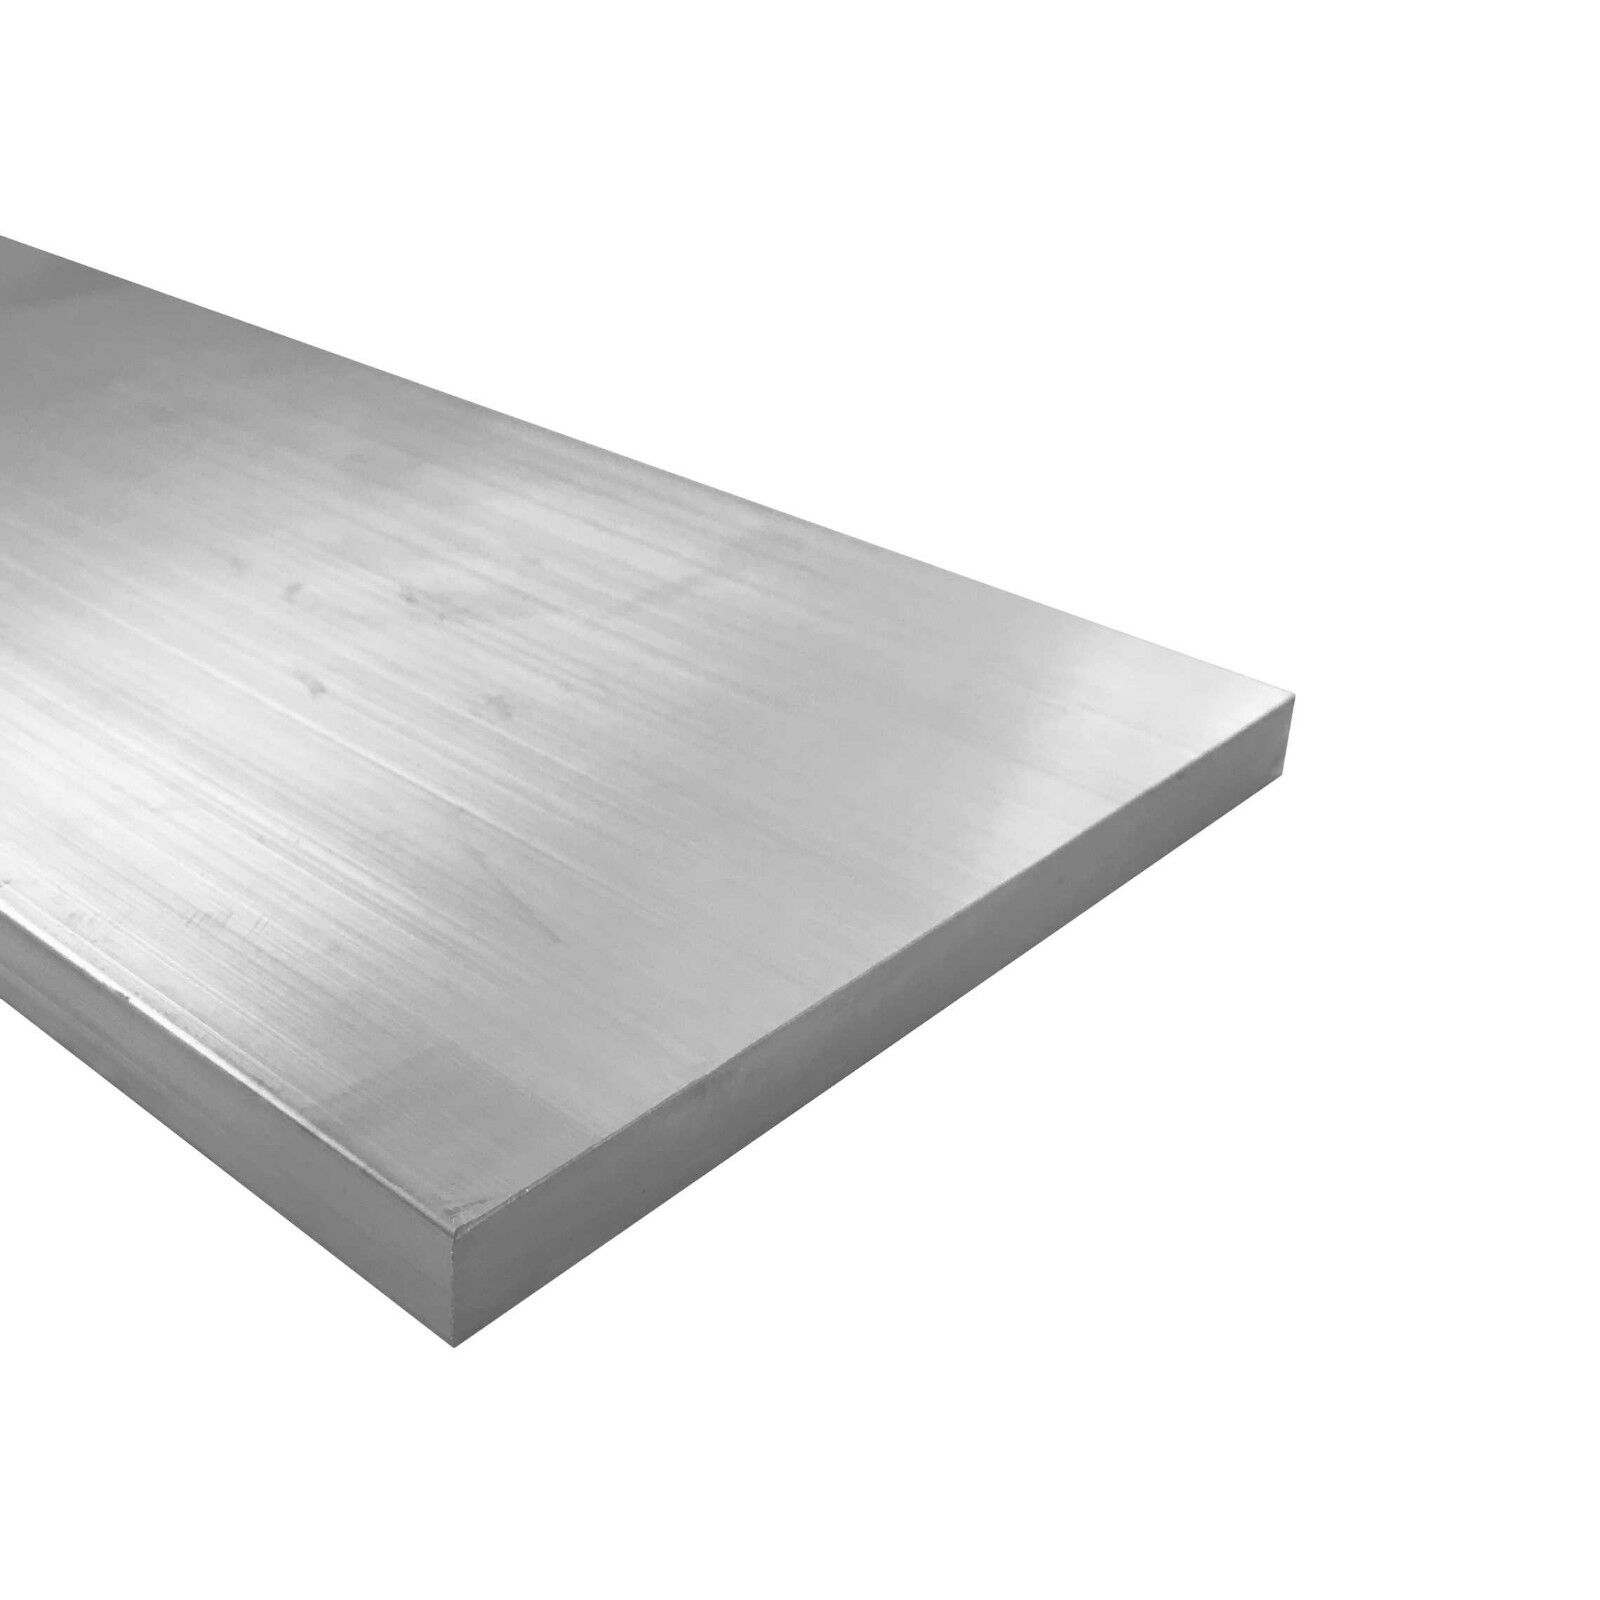 "1//4/"" x 1-1//2/"" 6061 Aluminum Flat Bar 36/"" Long!"